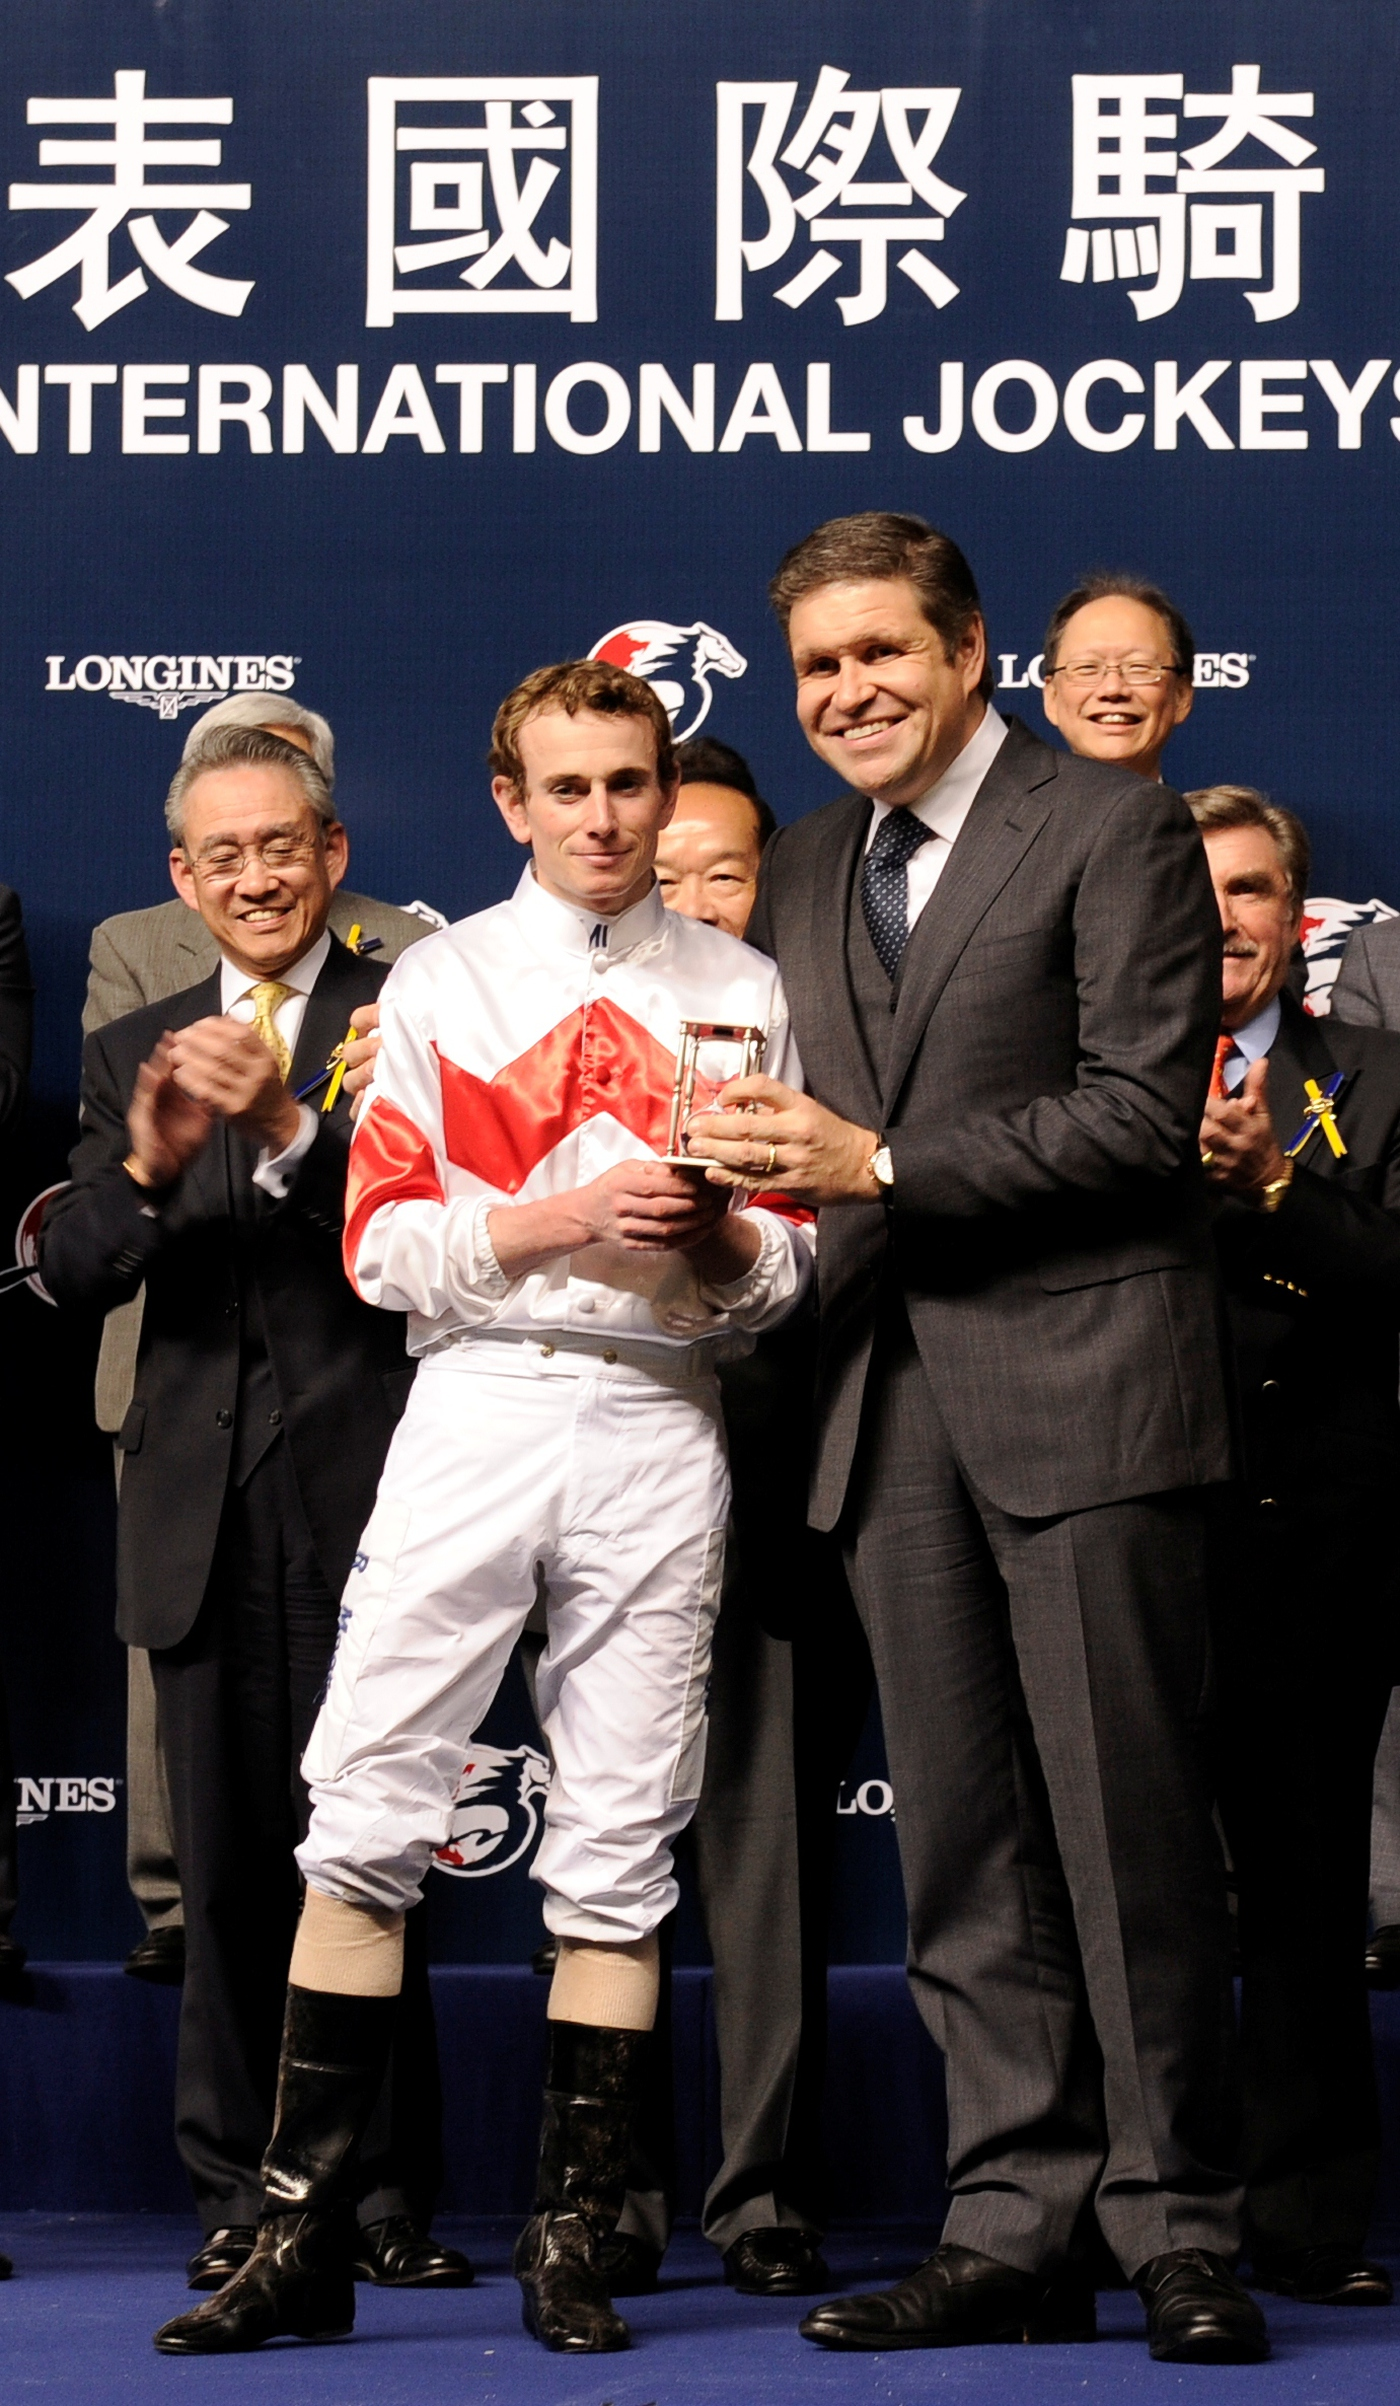 Longines Flat Racing Event: Joao Moreira, winner of the Longines International Jockeys' Championship with the presence of Aaron Kwok Fu Shing 5